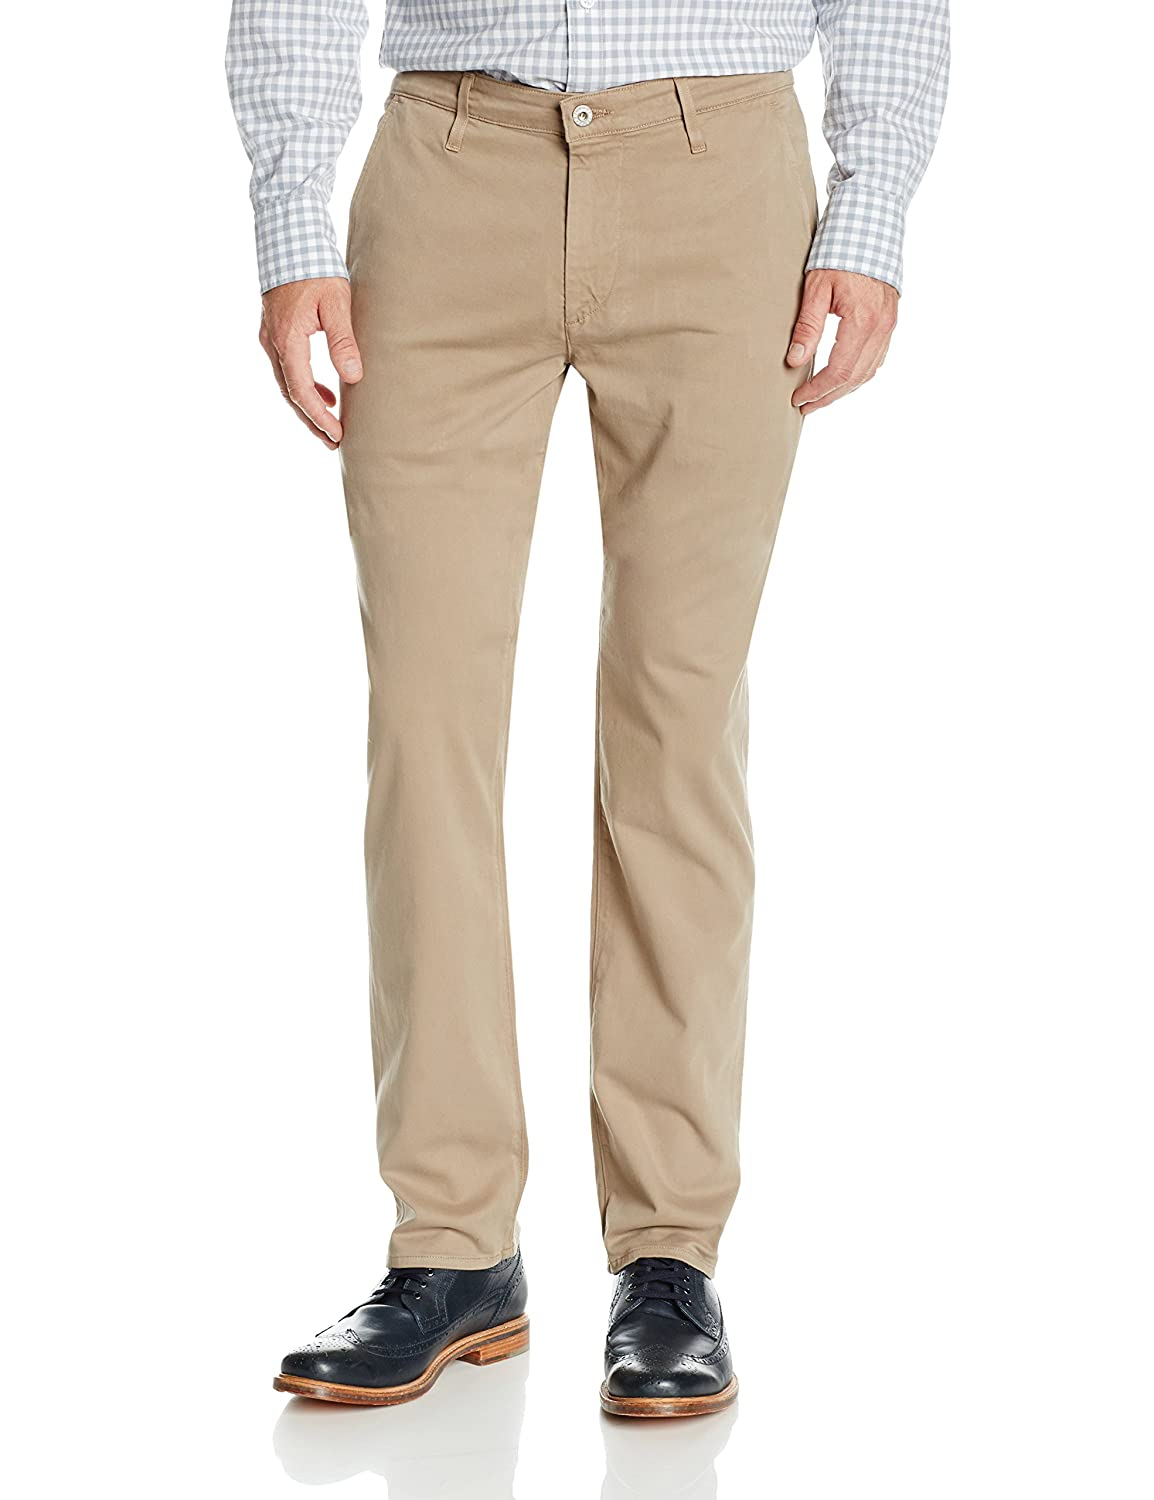 AG Adriano Goldschmied mens The Lux Khaki Tailored Trouser 1188SUB